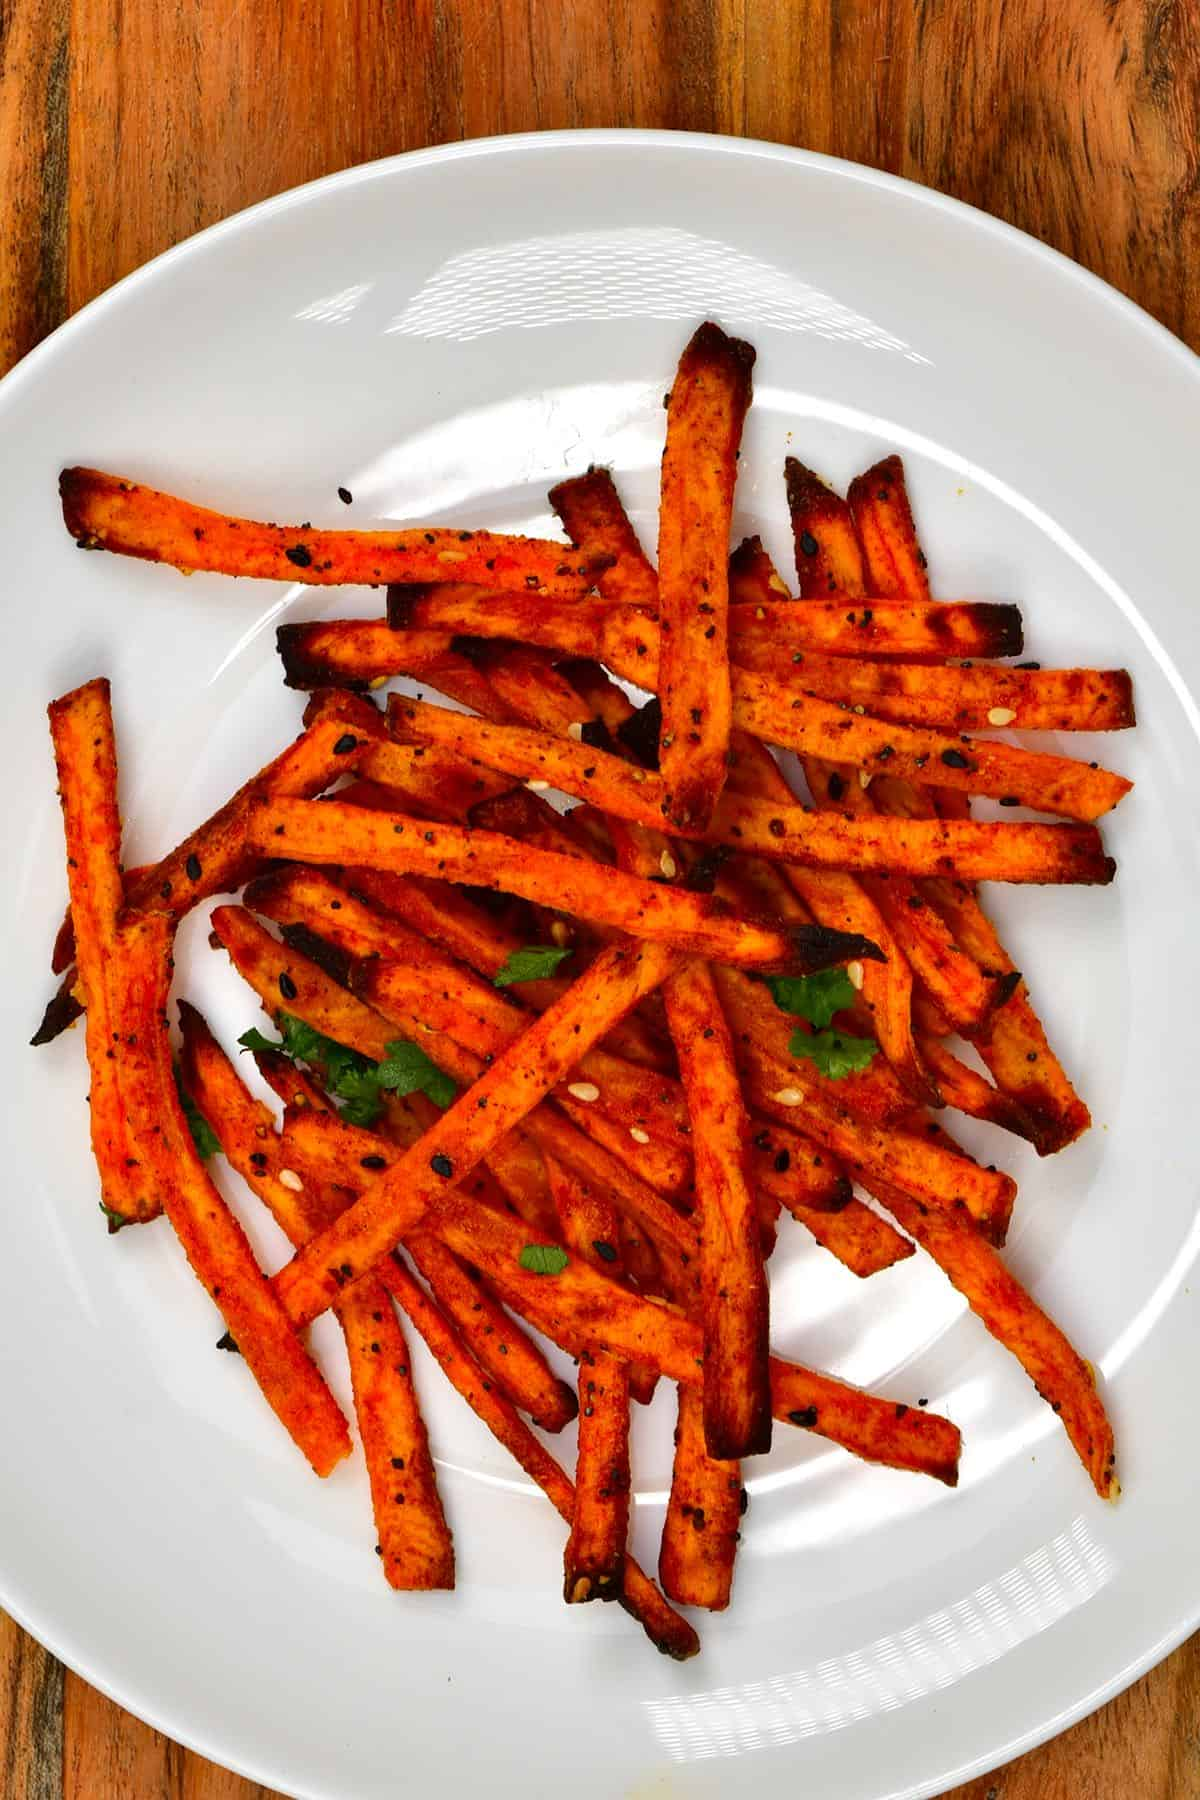 Sweet potato fries in a white plate